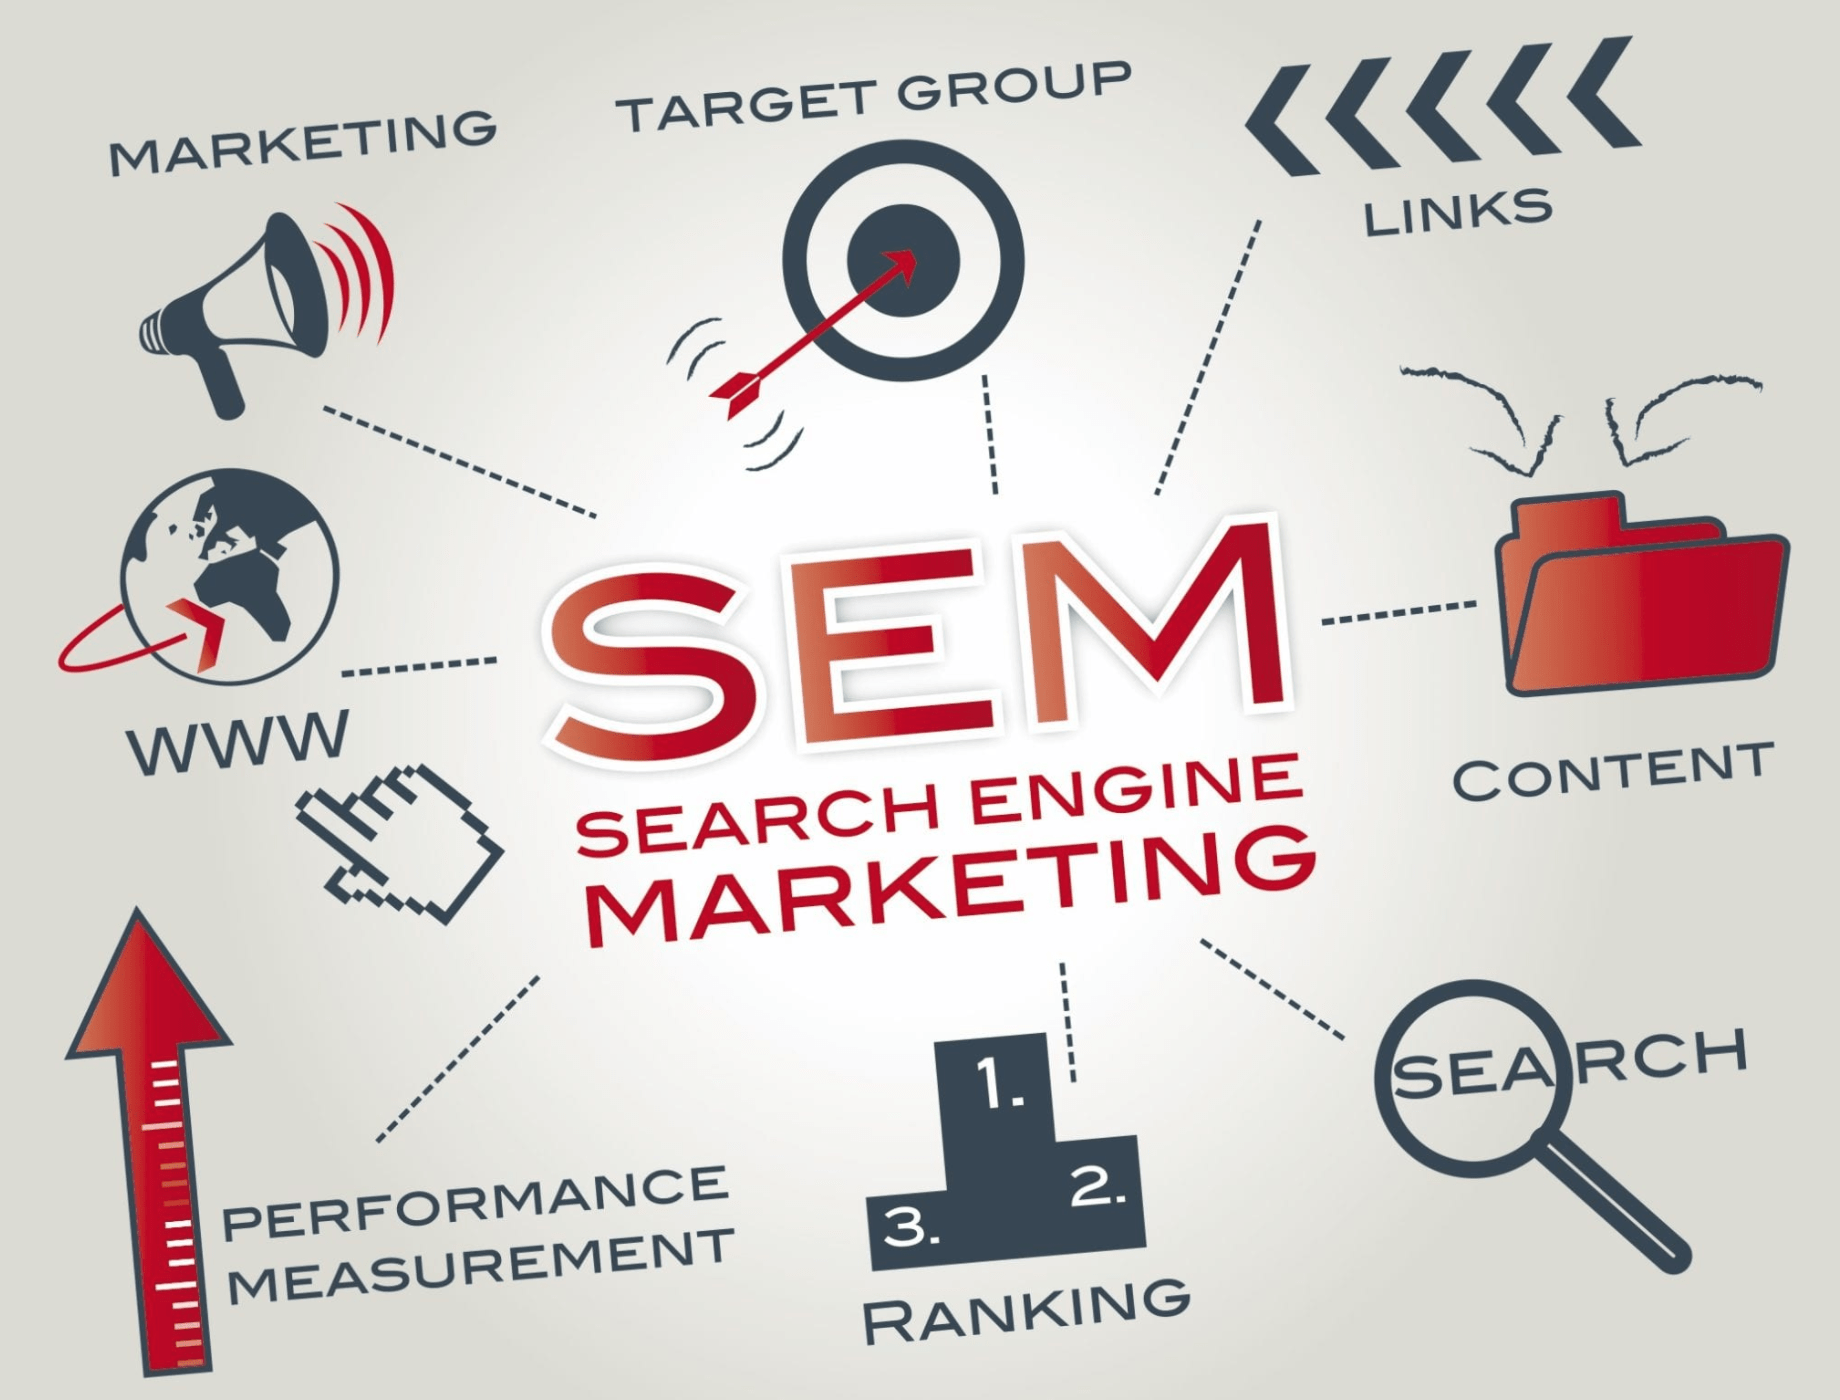 How impactful is Search Engine Marketing?